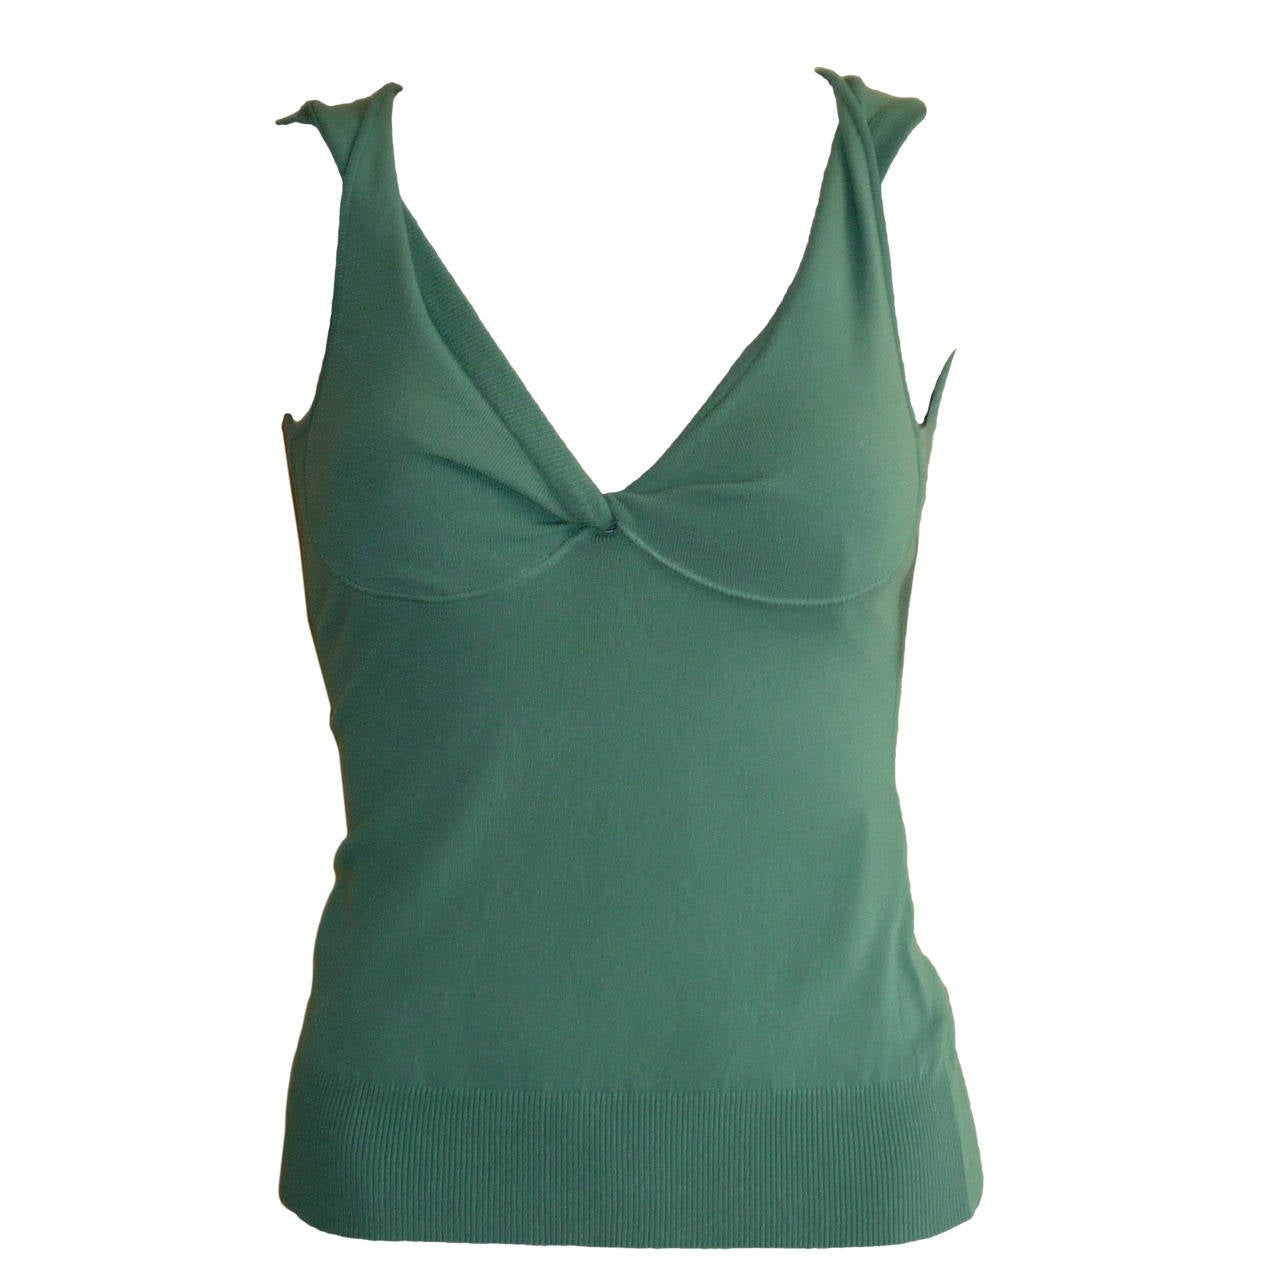 Dolce & Gabbana Soft Green Top NWT 40 ITL 1